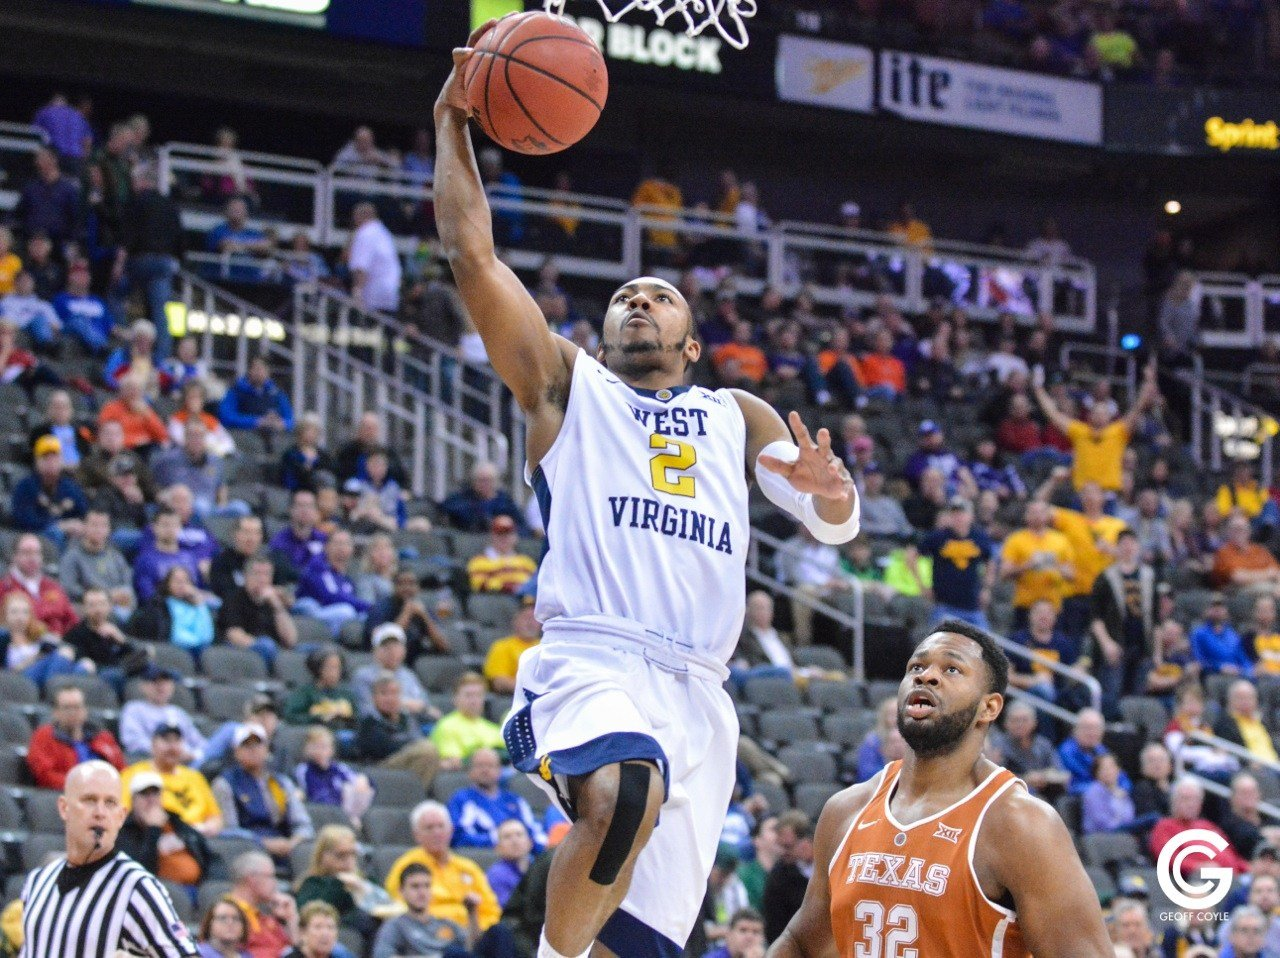 Jevon Carter finishes with 21 points (Jevon Carter finished with 21 points as WVU defeats Texas 63-53 in the quarterfinals. (PHOTO: Geoff Coyle): Geoff Coyle)